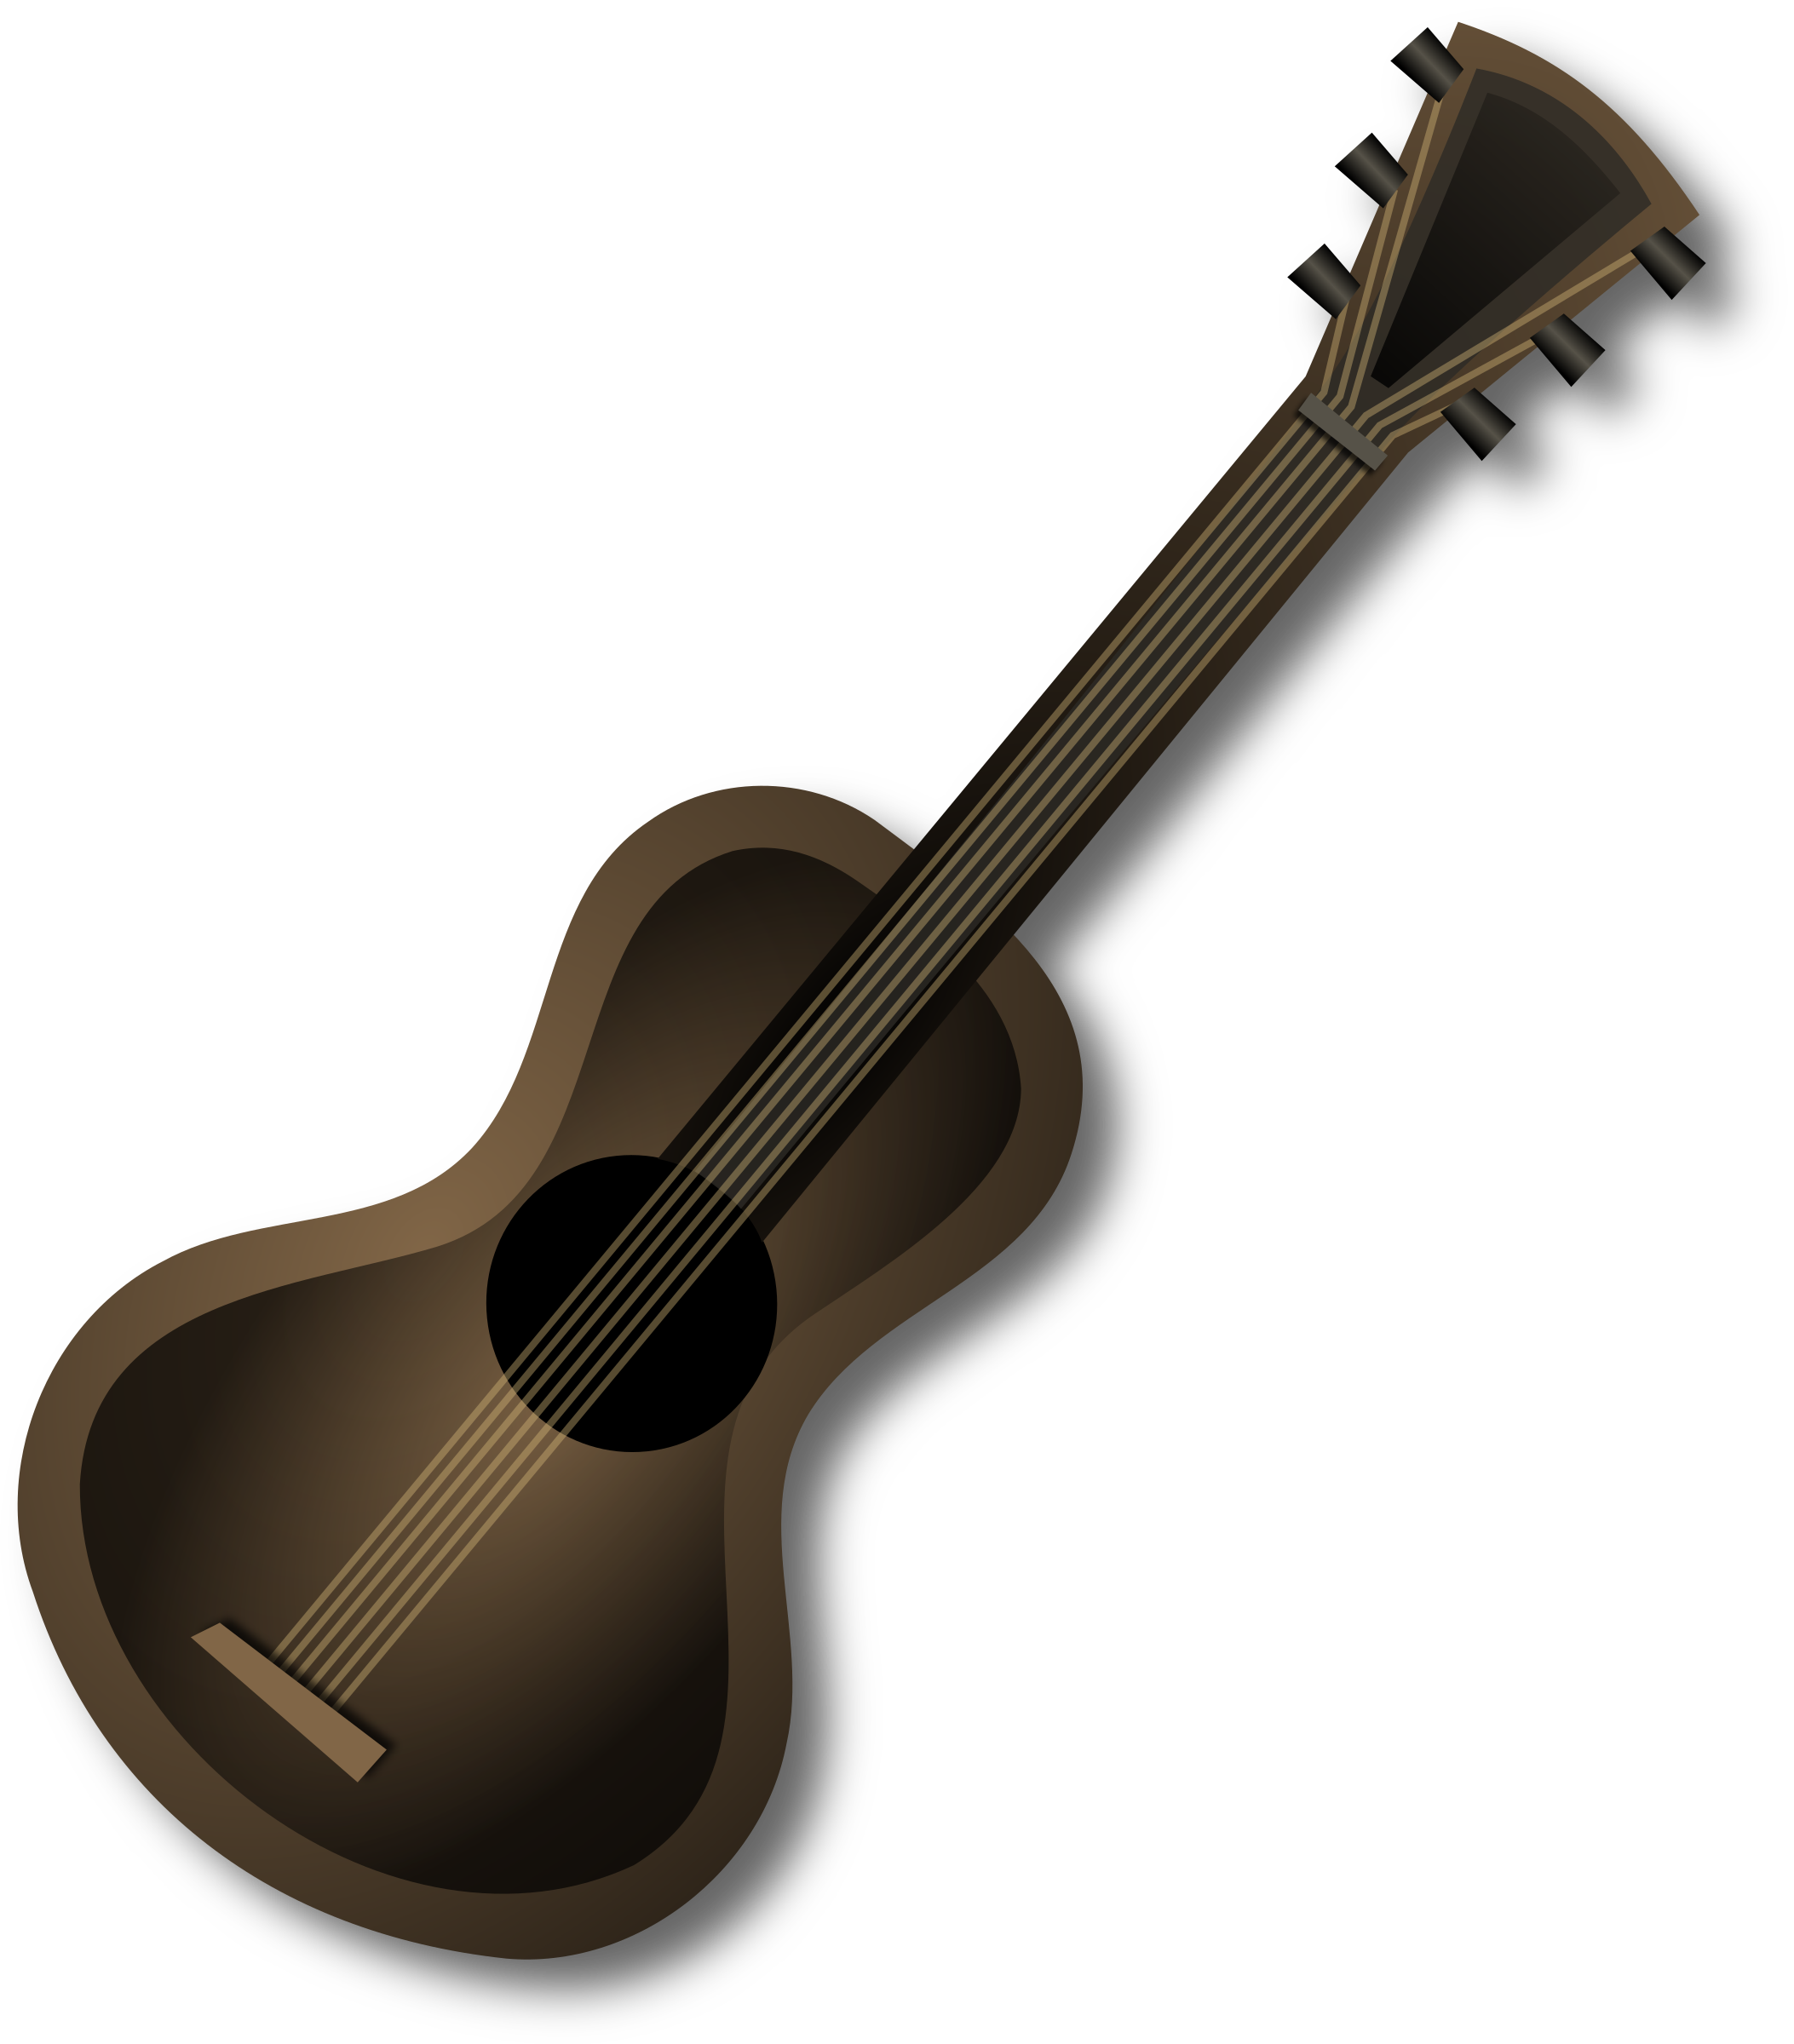 Brown Guitar by Merlin2525